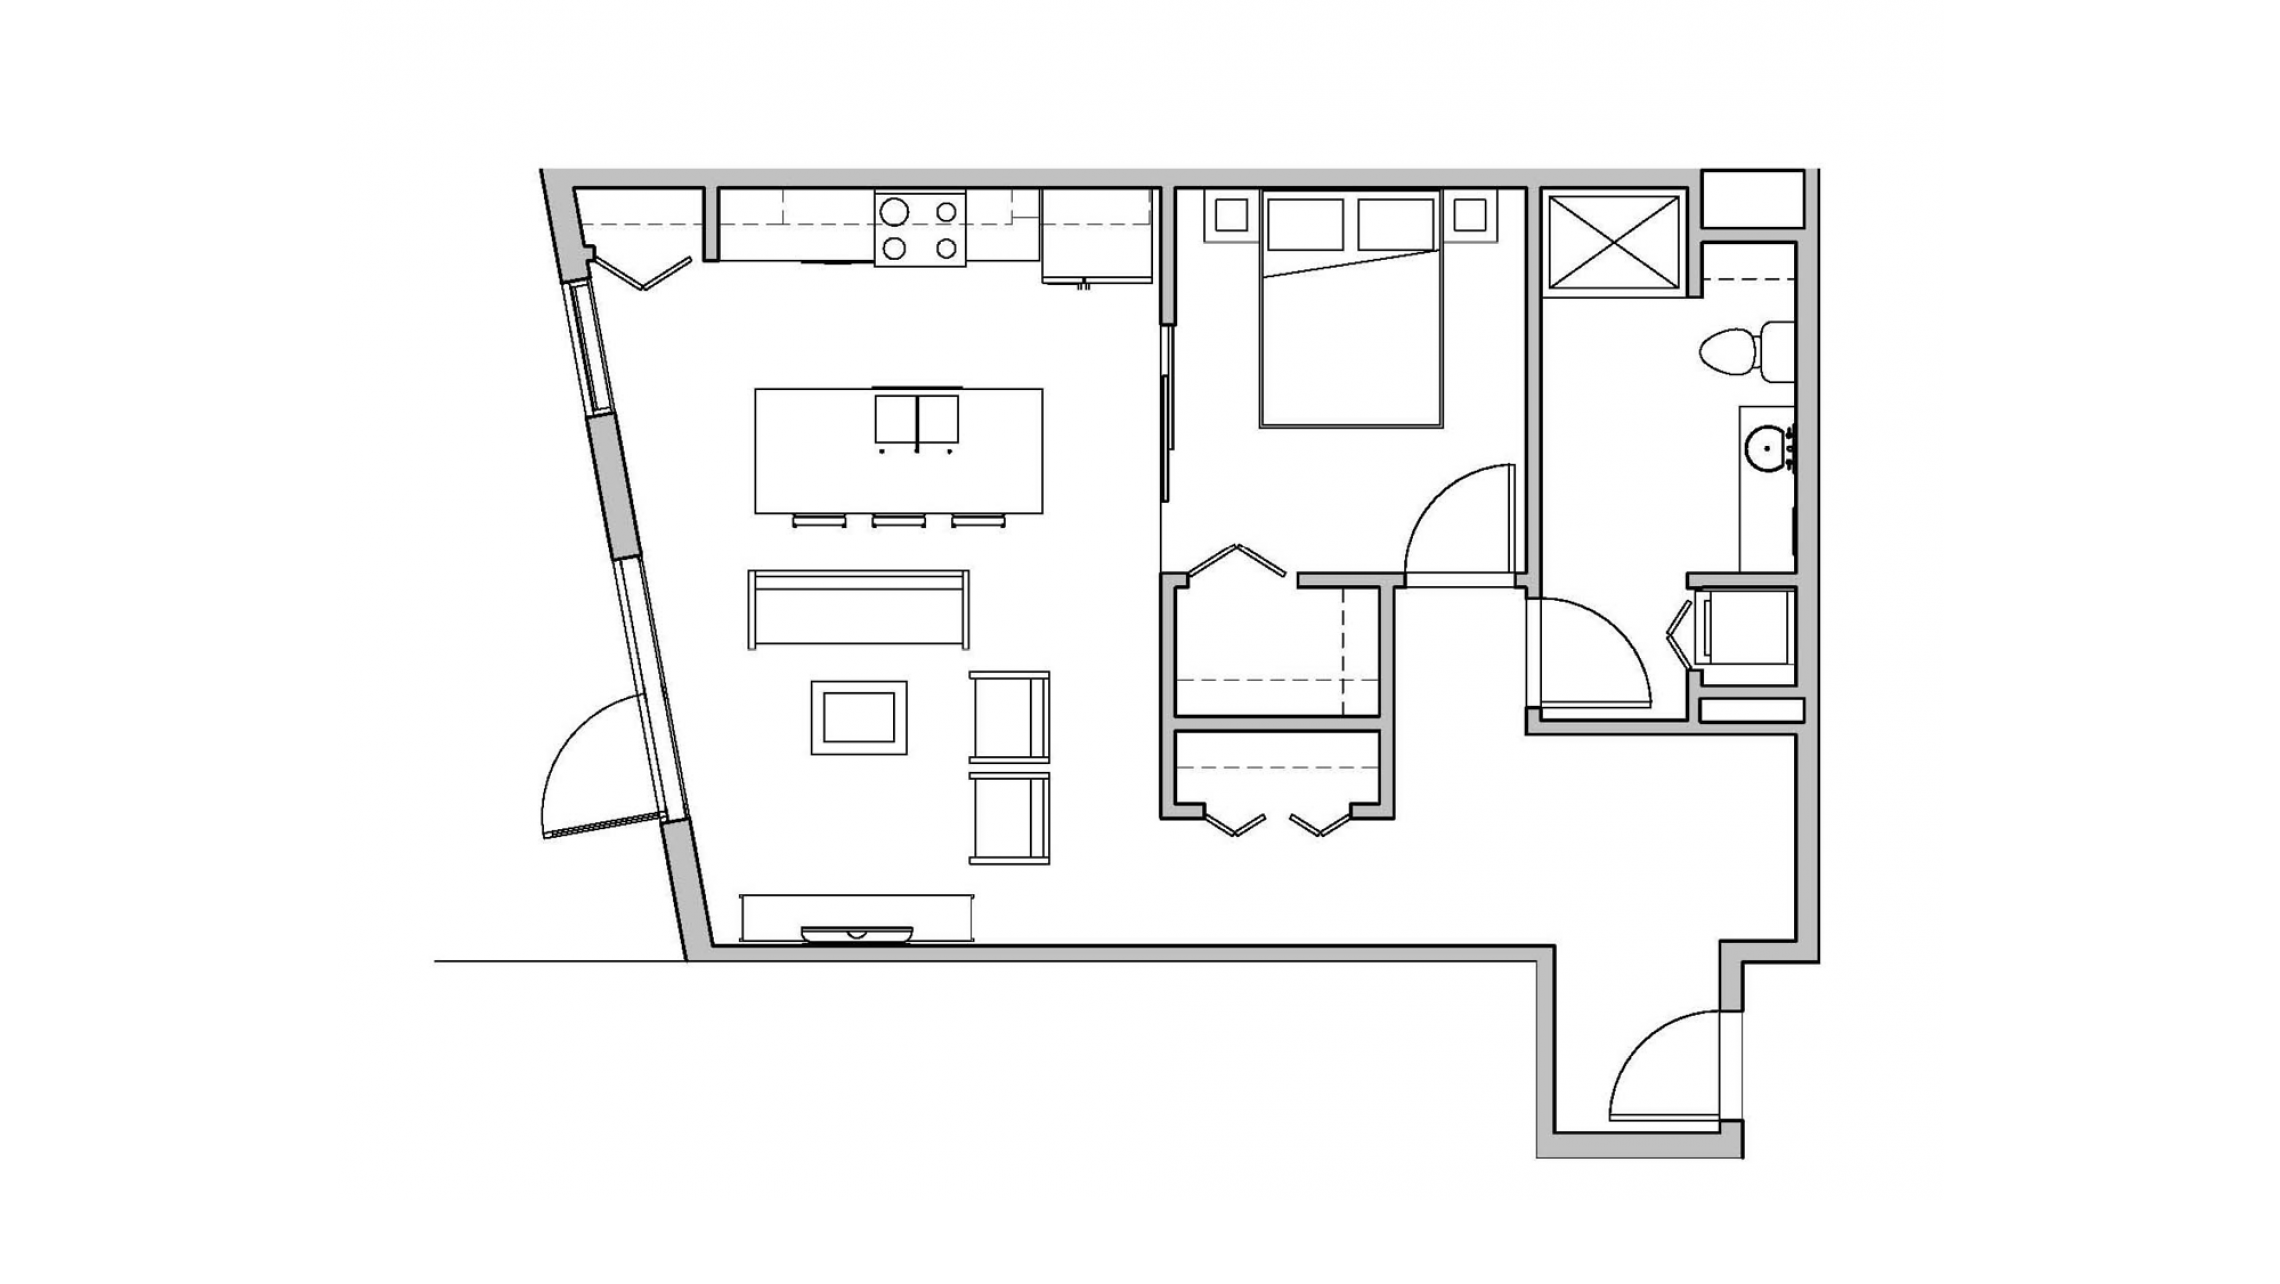 ULI Seven27 104 - One Bedroom, One Bathroom